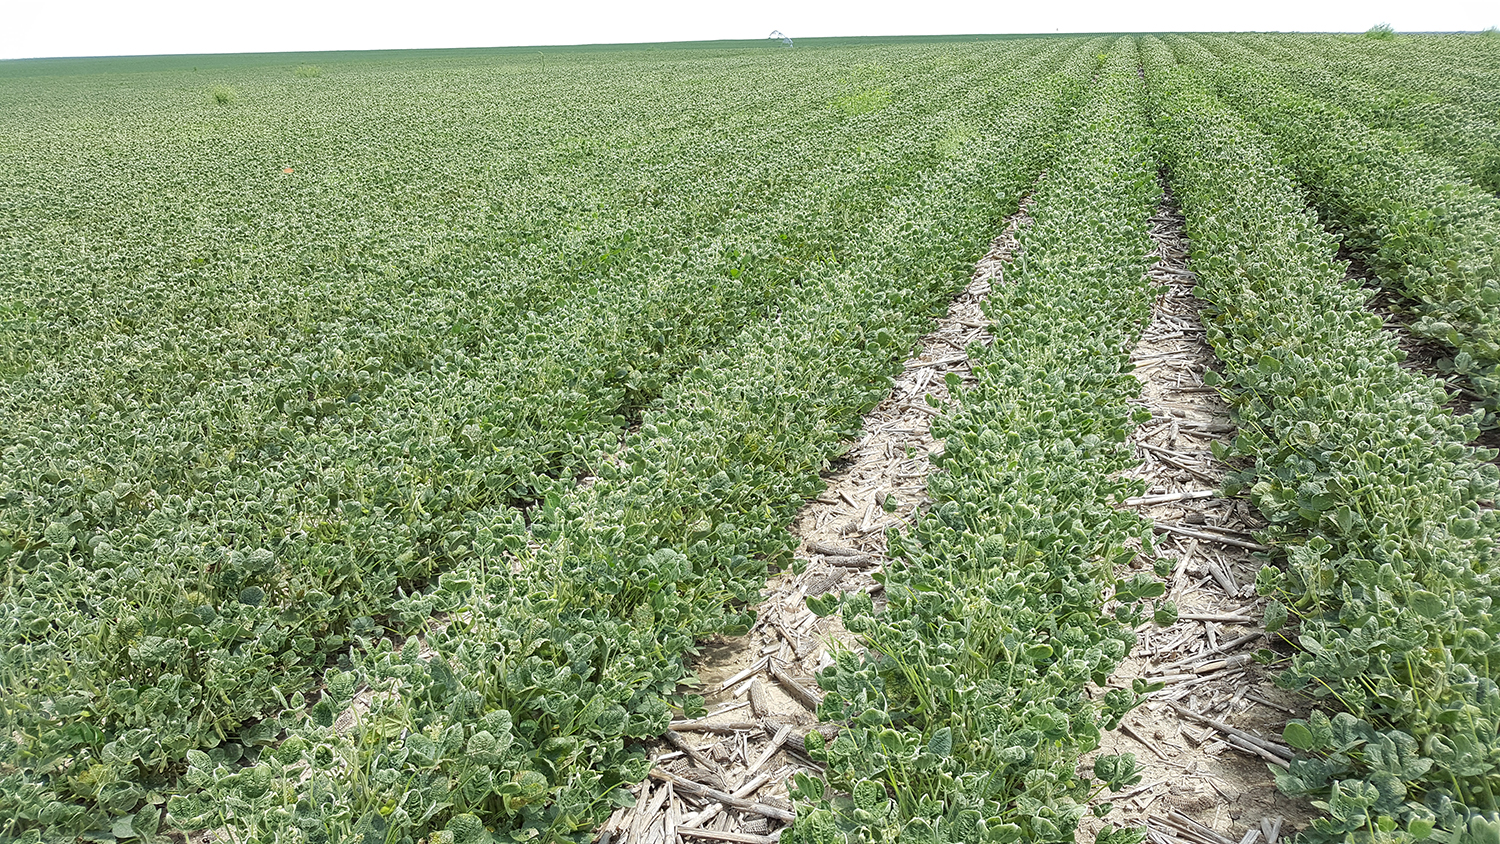 Soybean field injured by dicamba